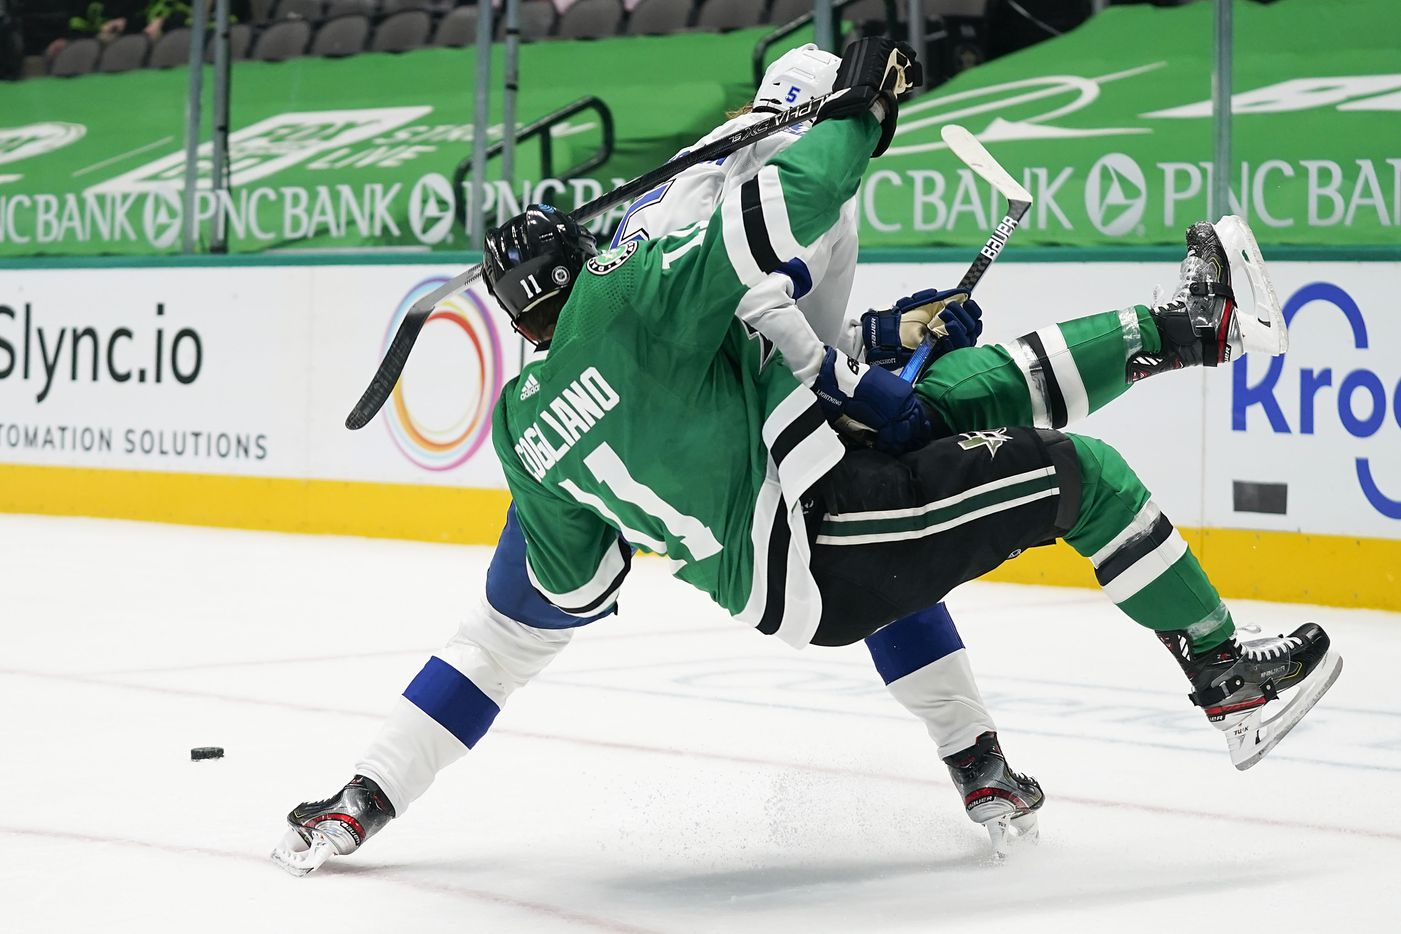 Dallas Stars center Andrew Cogliano (11) is knocked off his skates by Tampa Bay Lightning defenseman Andreas Borgman (5) during the first period of an NHL hockey game at the American Airlines Center on Thursday, March 25, 2021, in Dallas. (Smiley N. Pool/The Dallas Morning News)